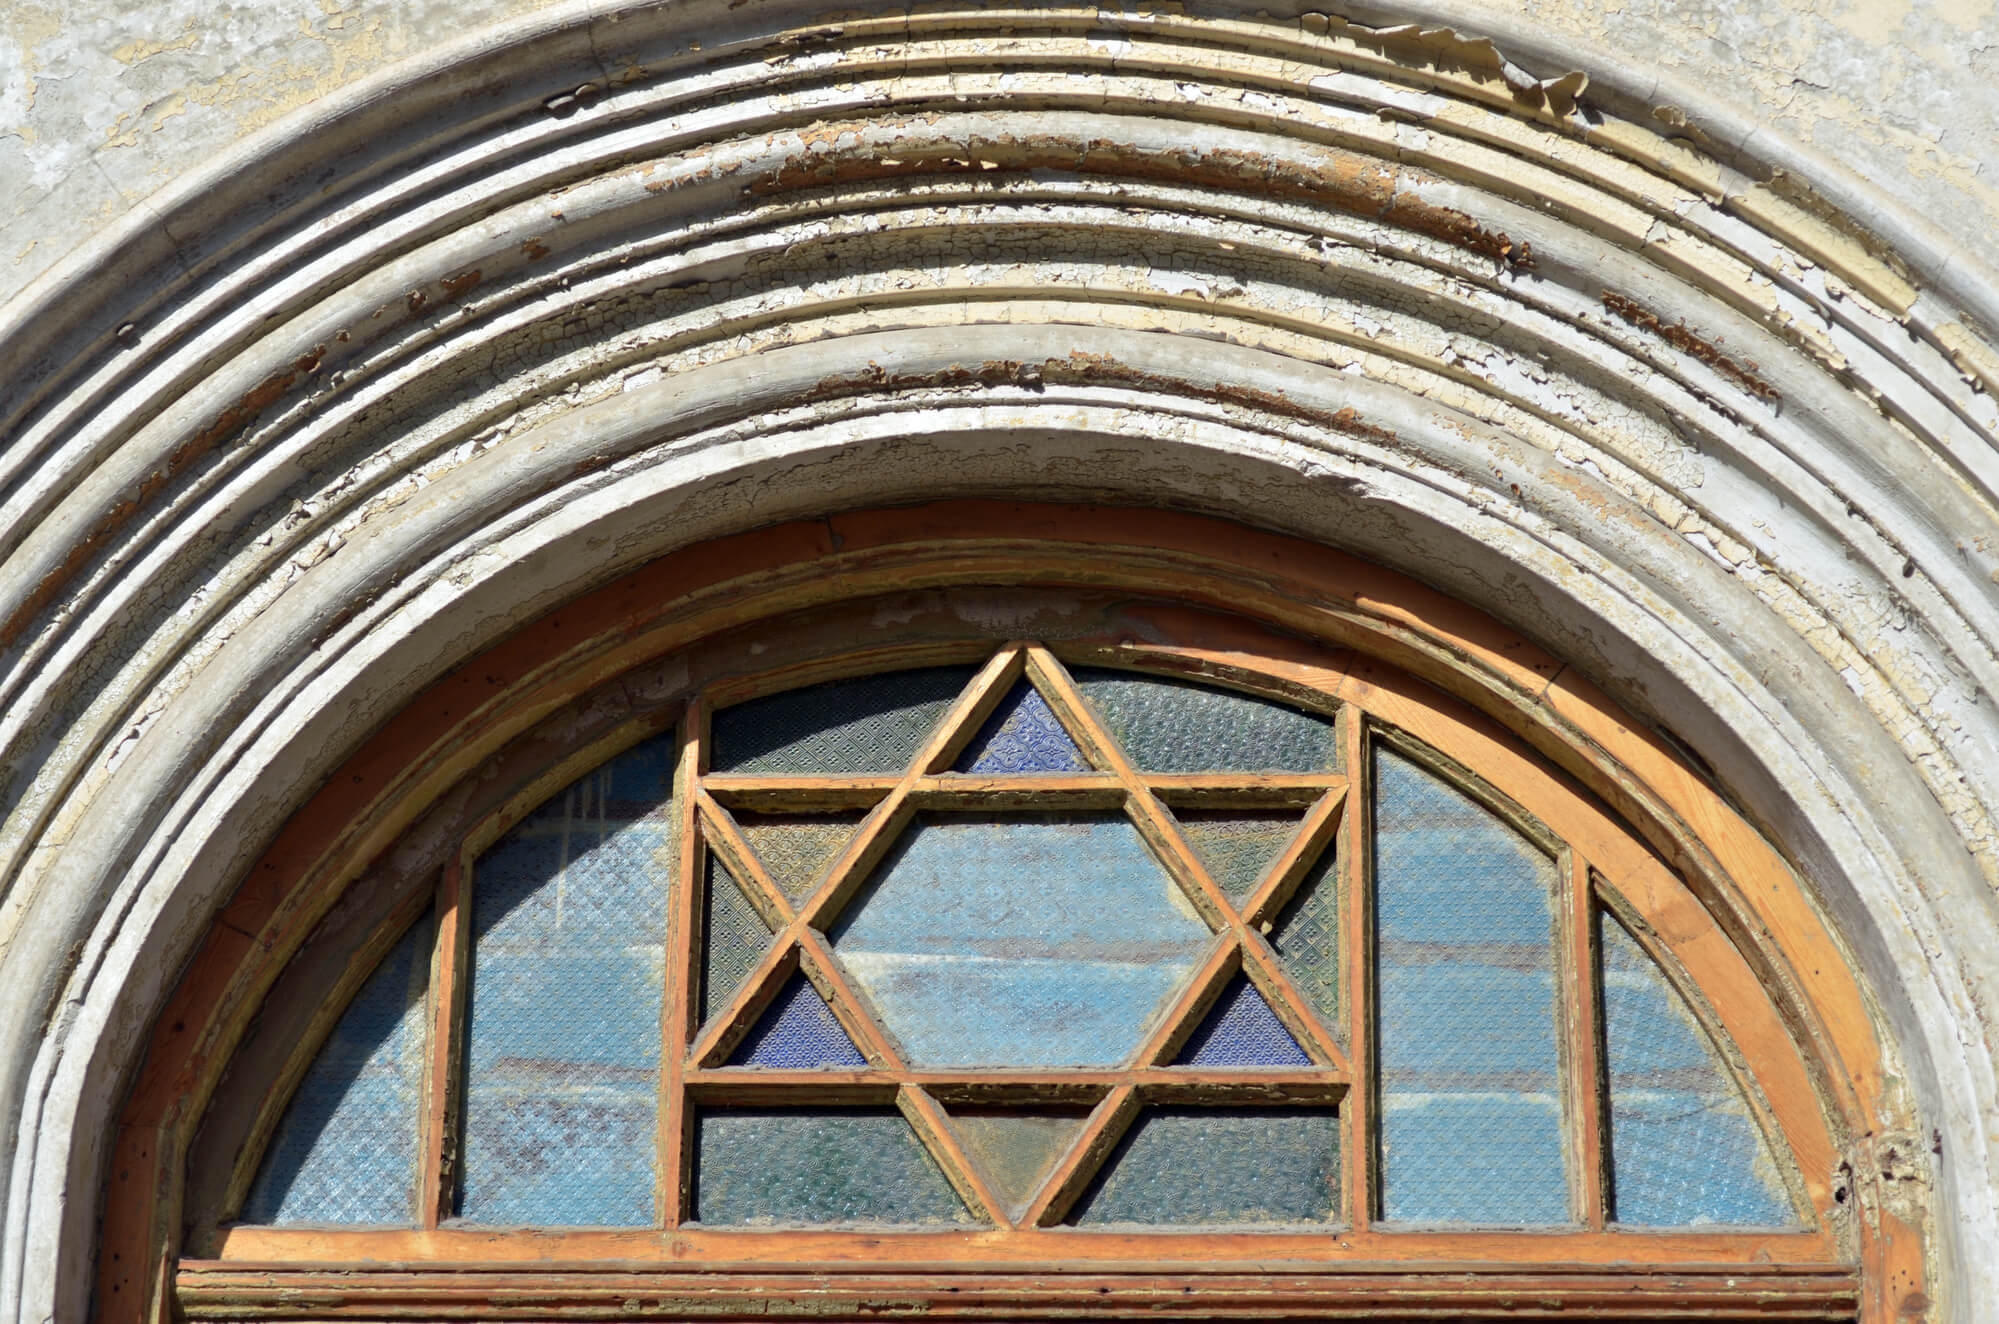 Star of David on a doorway of a synagogue